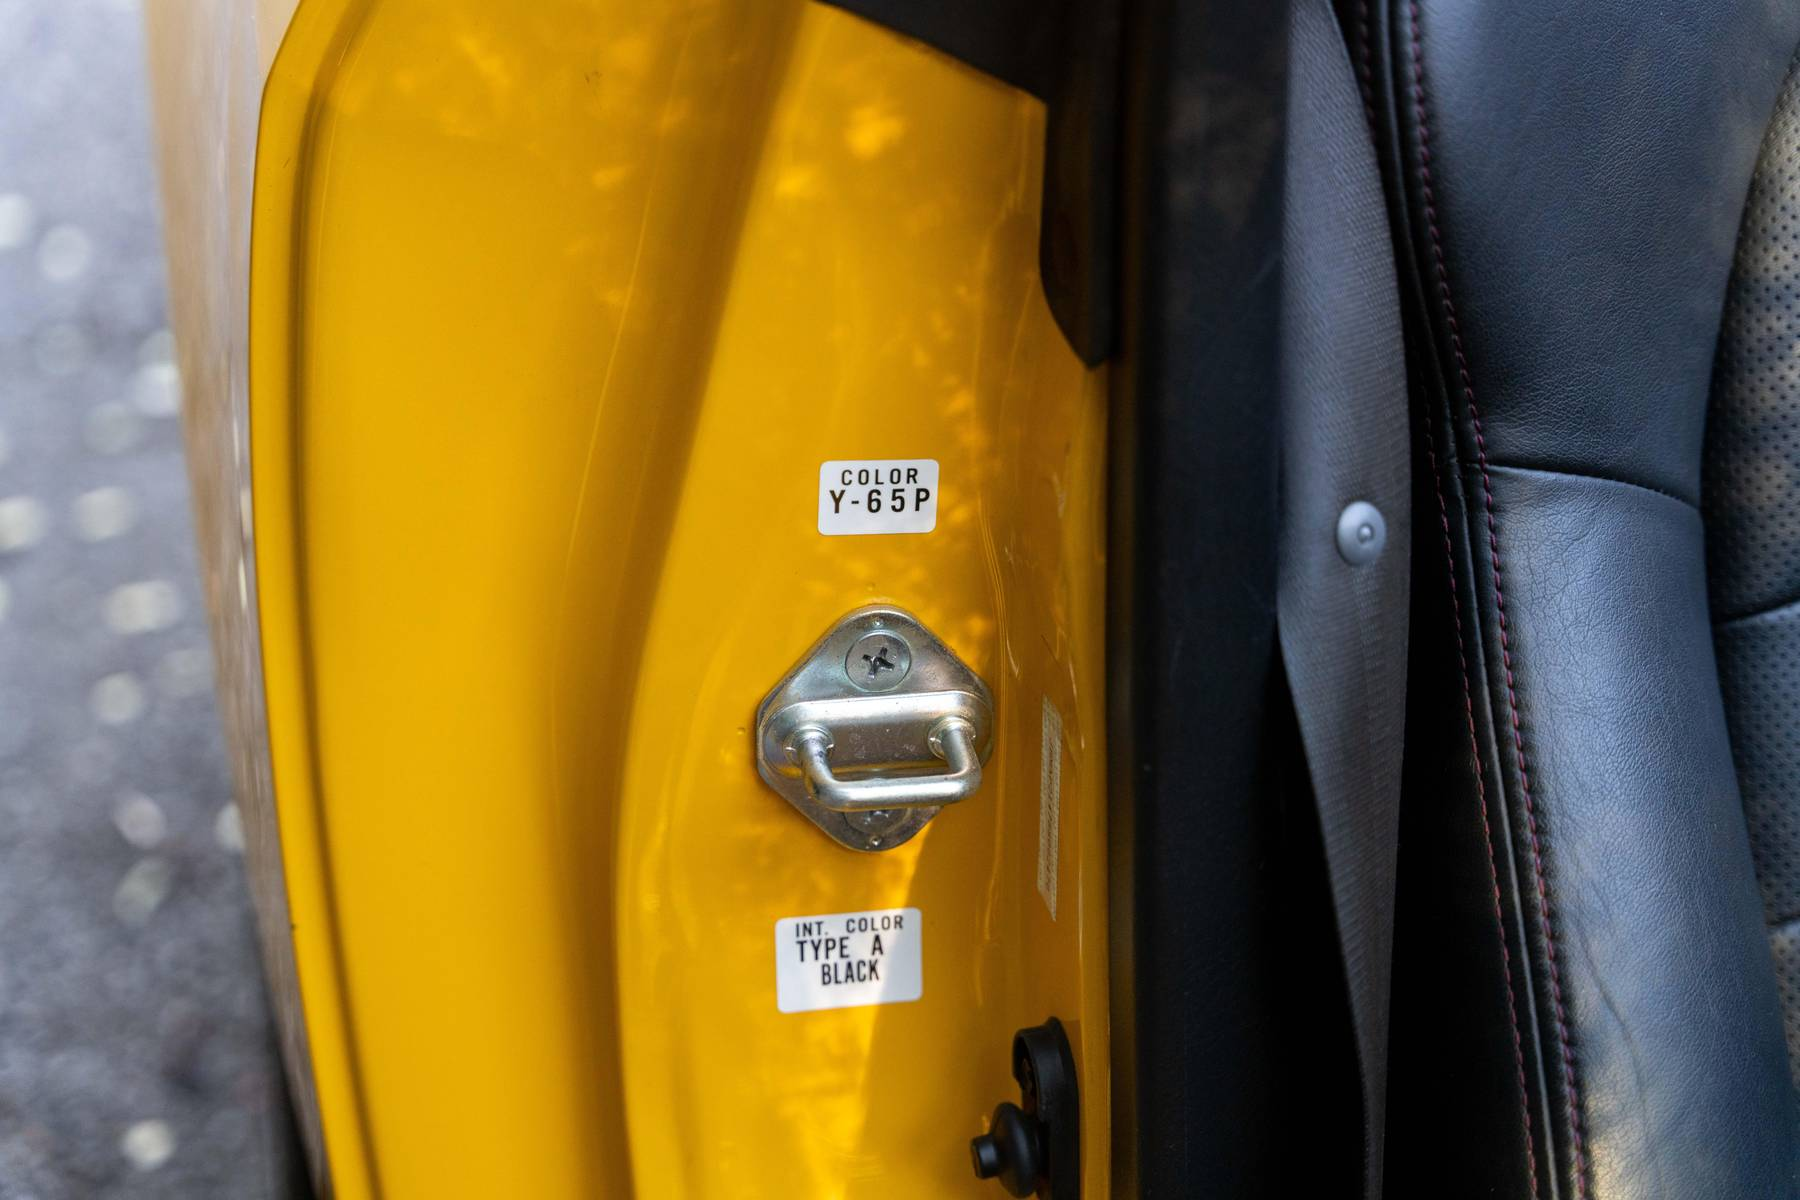 Y65P - NEW INDY YELLOW, RIO YELLOW PEARL, NOUVEAU JAUNE INDY-7.jpg